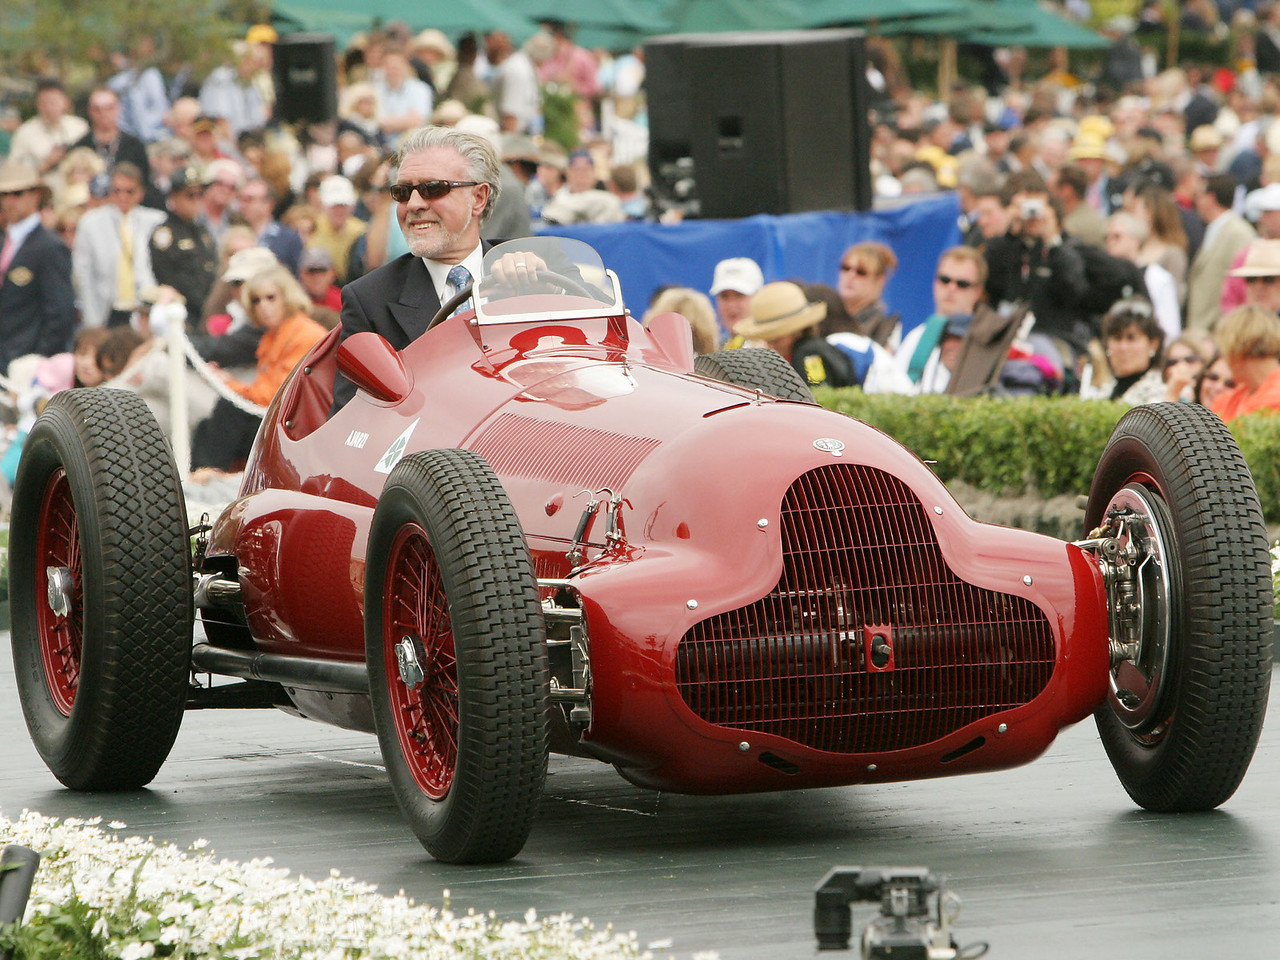 1937 Alfa Romeo Tipo 12C Monoposto owned by Neil Hadfield from London, United Kingdom 2nd Class E-2 (Alfa Romeo Prewar Race Cars)